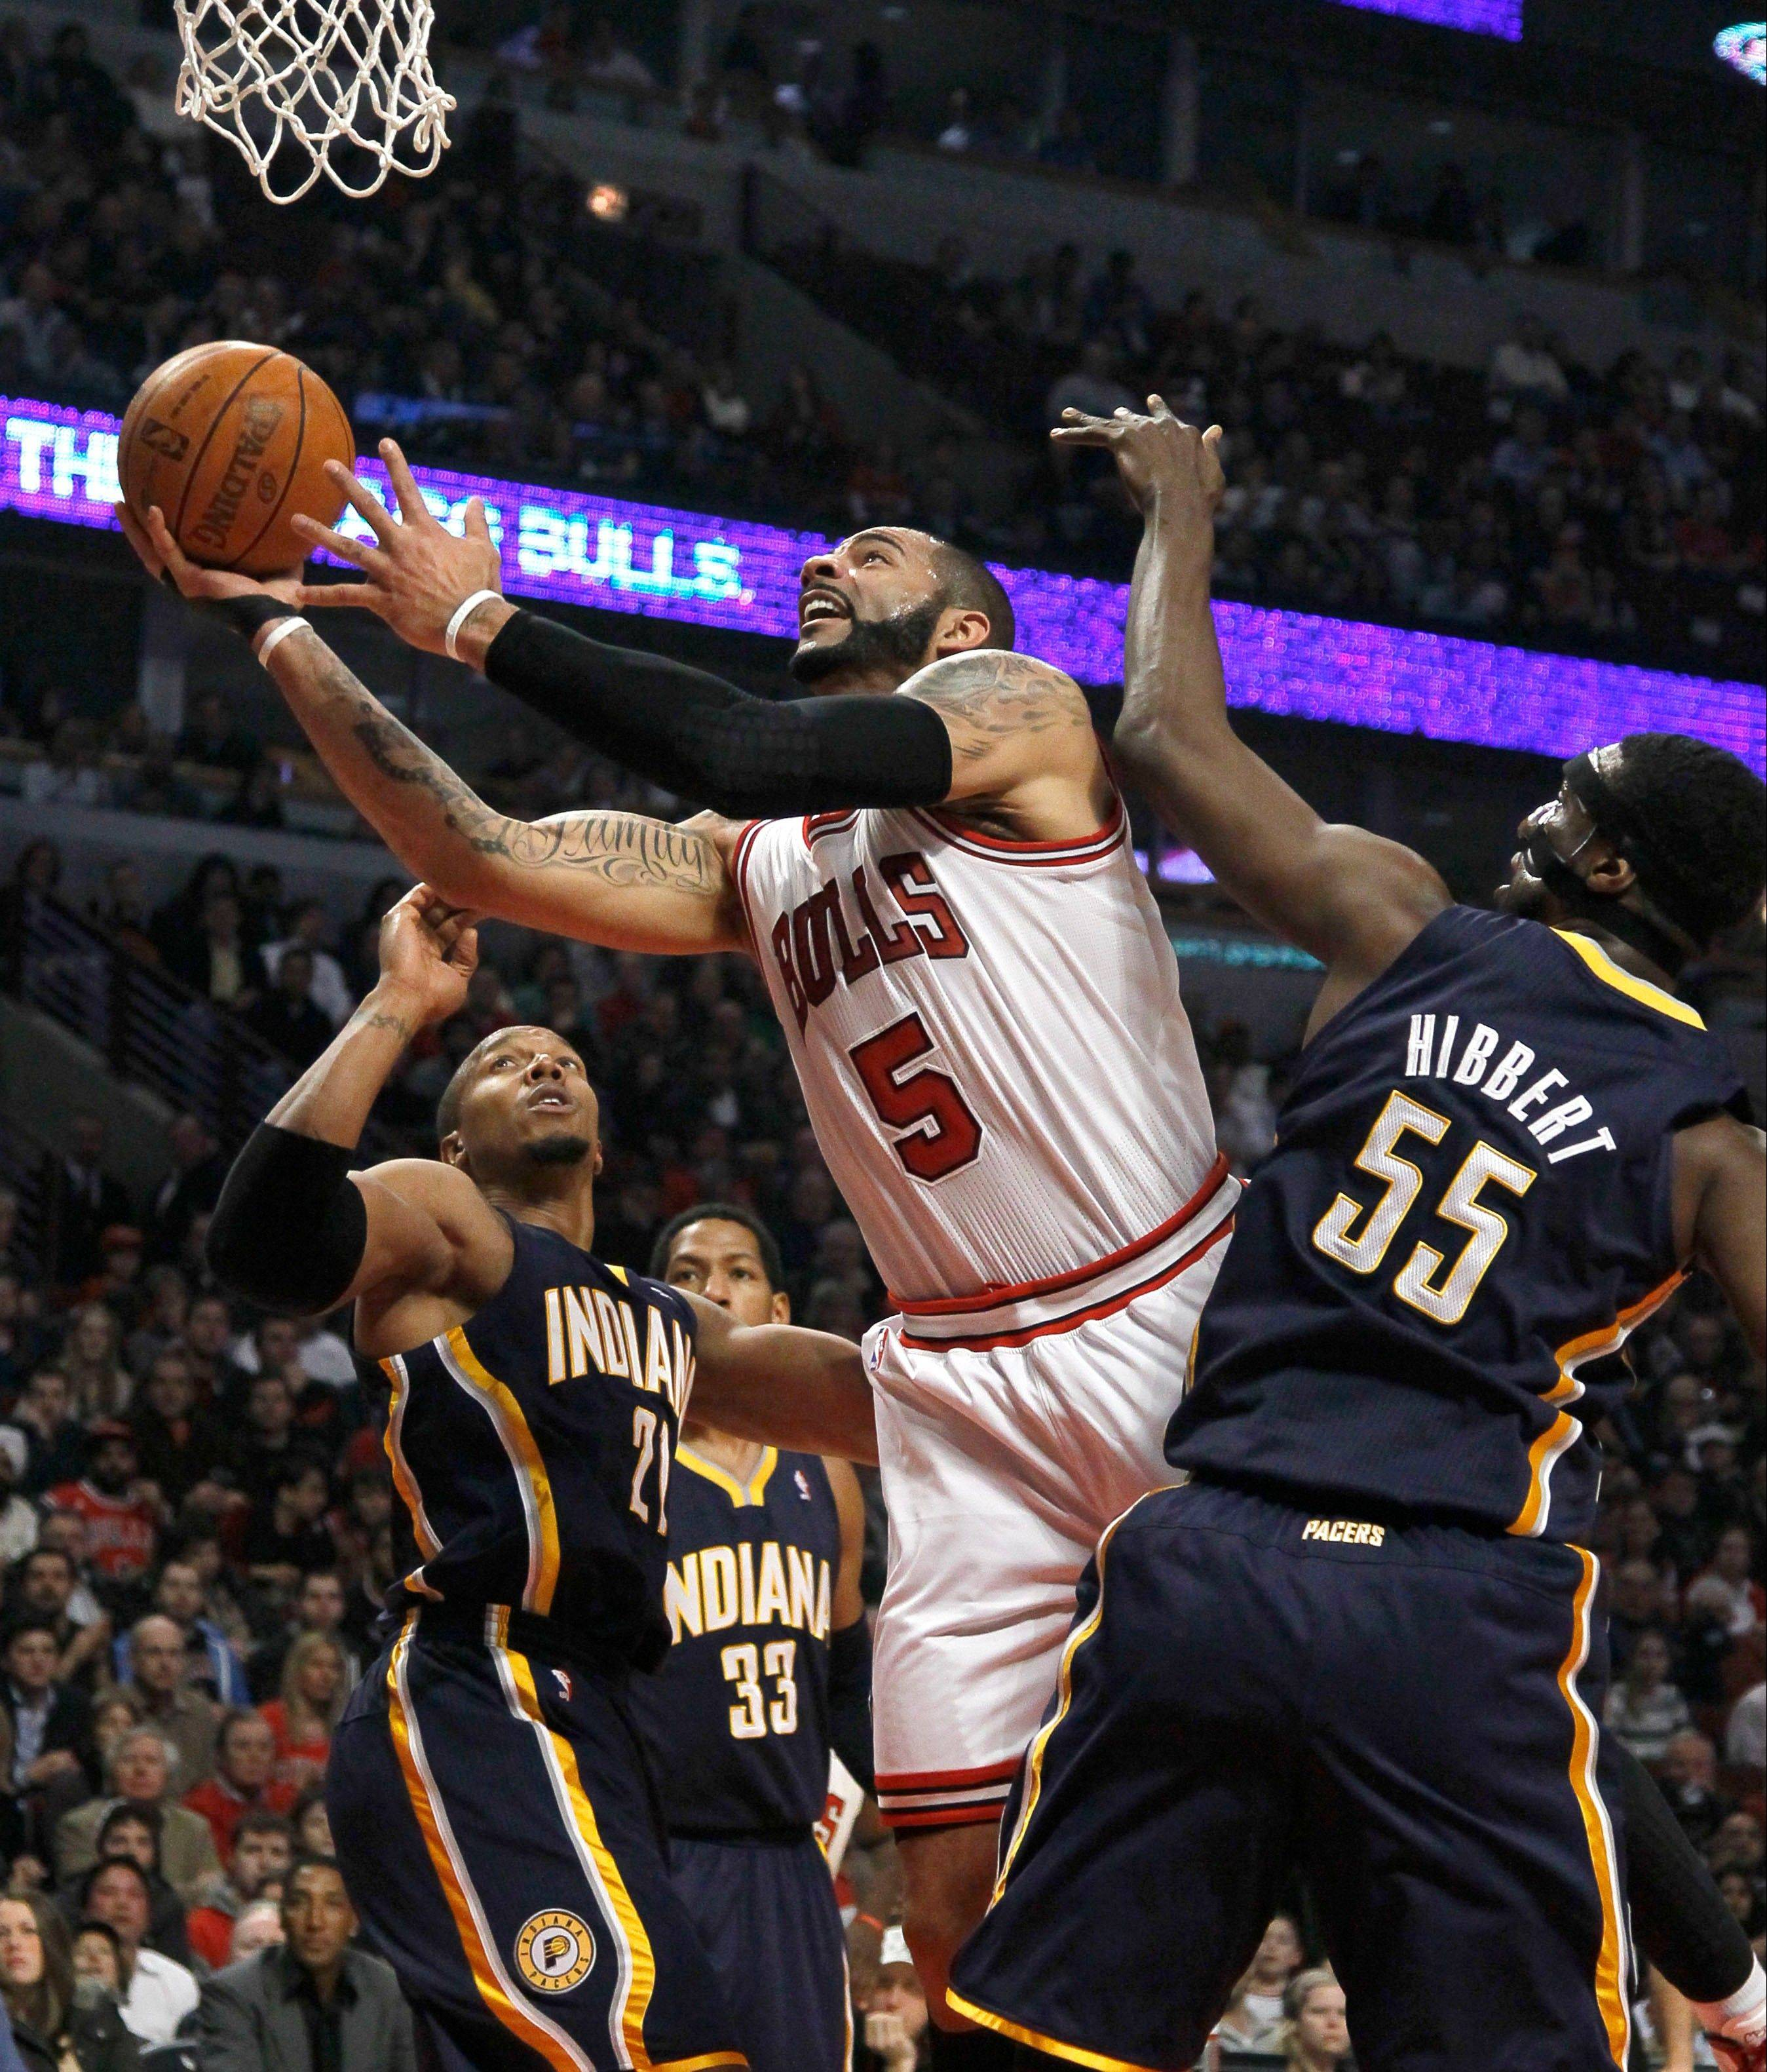 The Bulls' Carlos Boozer scores past the defense of Indiana Pacers forward David West (21) and center Roy Hibbert (55), during the first half on Wednesday at the United Center.